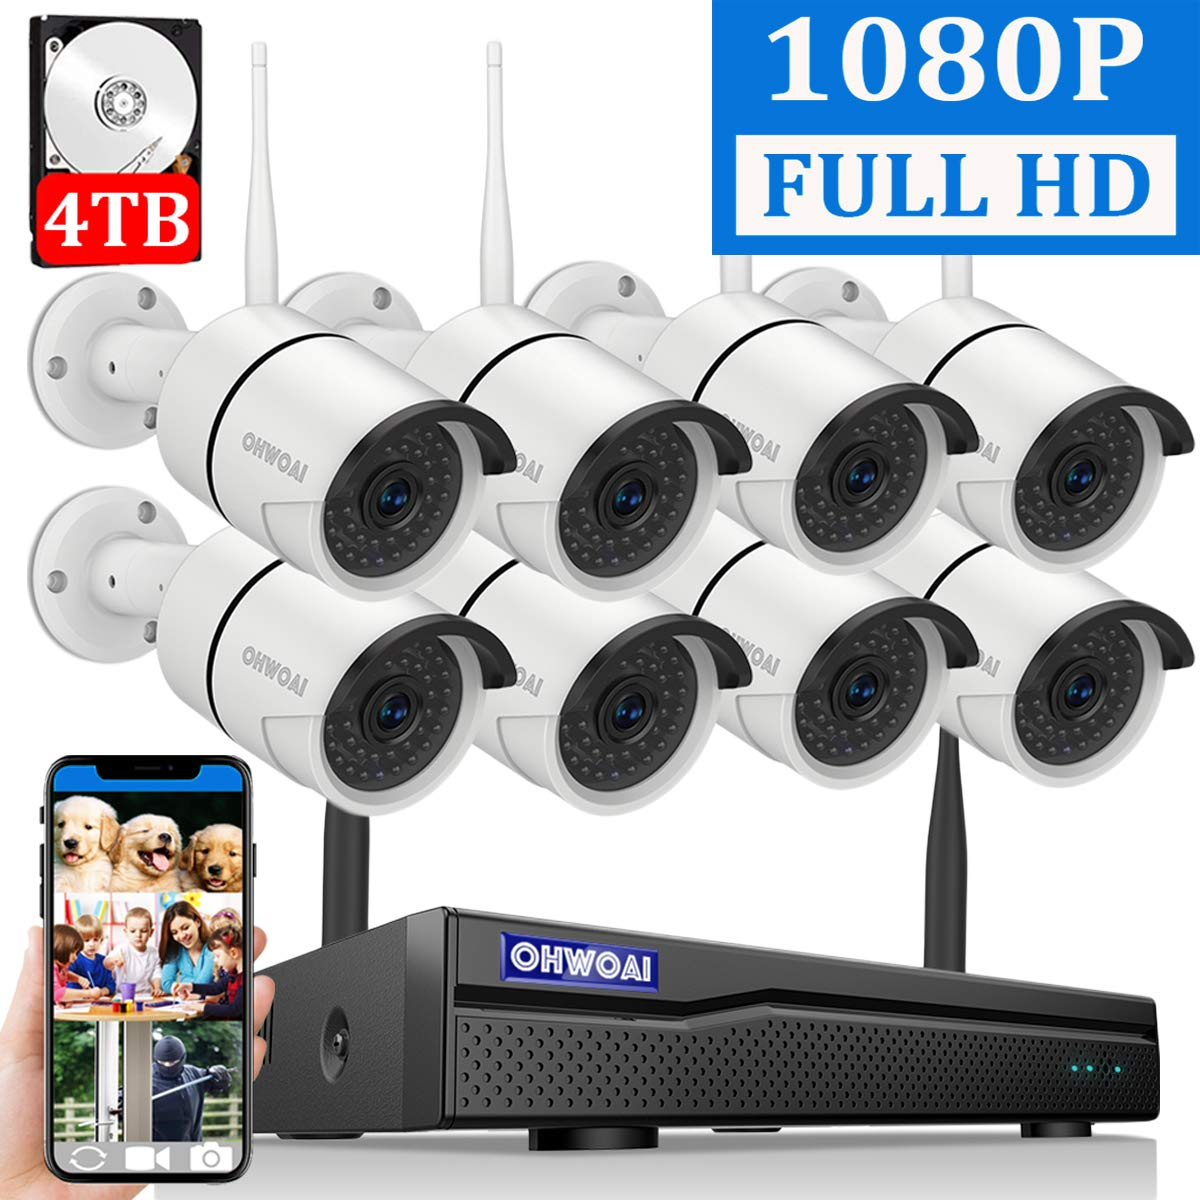 ?2019 New? Security Camera System Wireless, 4TB Hard Drive Pre-Install 8 Channel 1080P NVR, 8PCS 1080P 2.0MP CCTV WI-FI IP Cameras for Homes,OHWOAI HD Surveillance Video Security System.